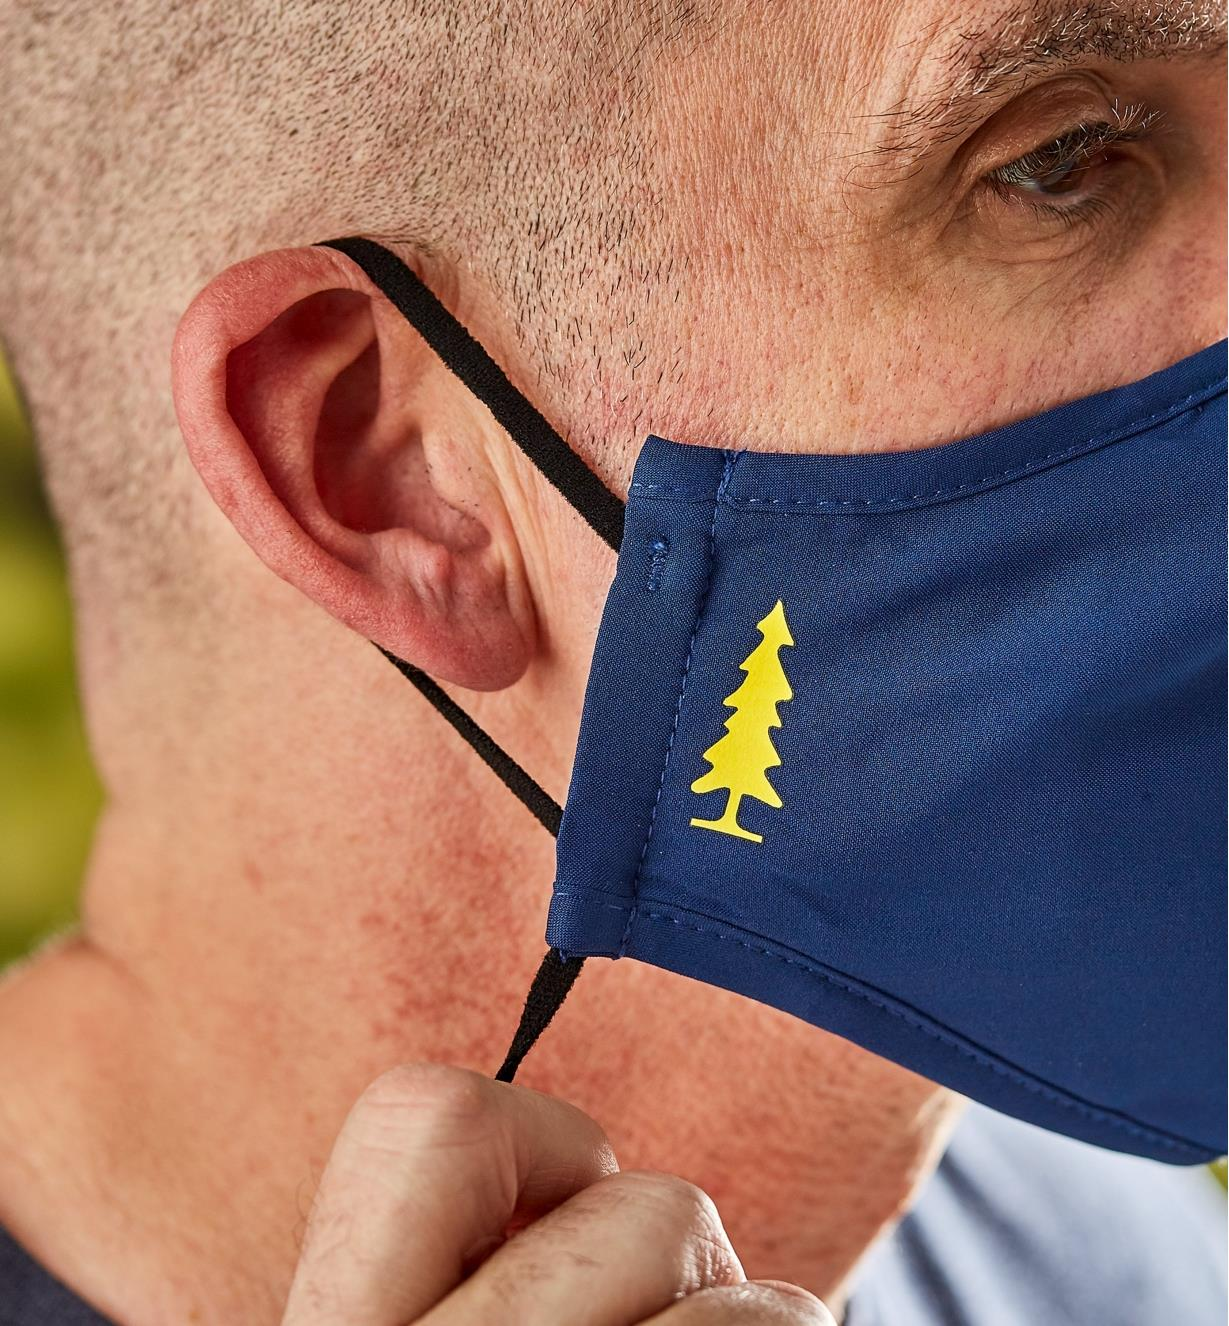 A side view of a man wearing a Lee Valley face mask, showing the adjustable ear band